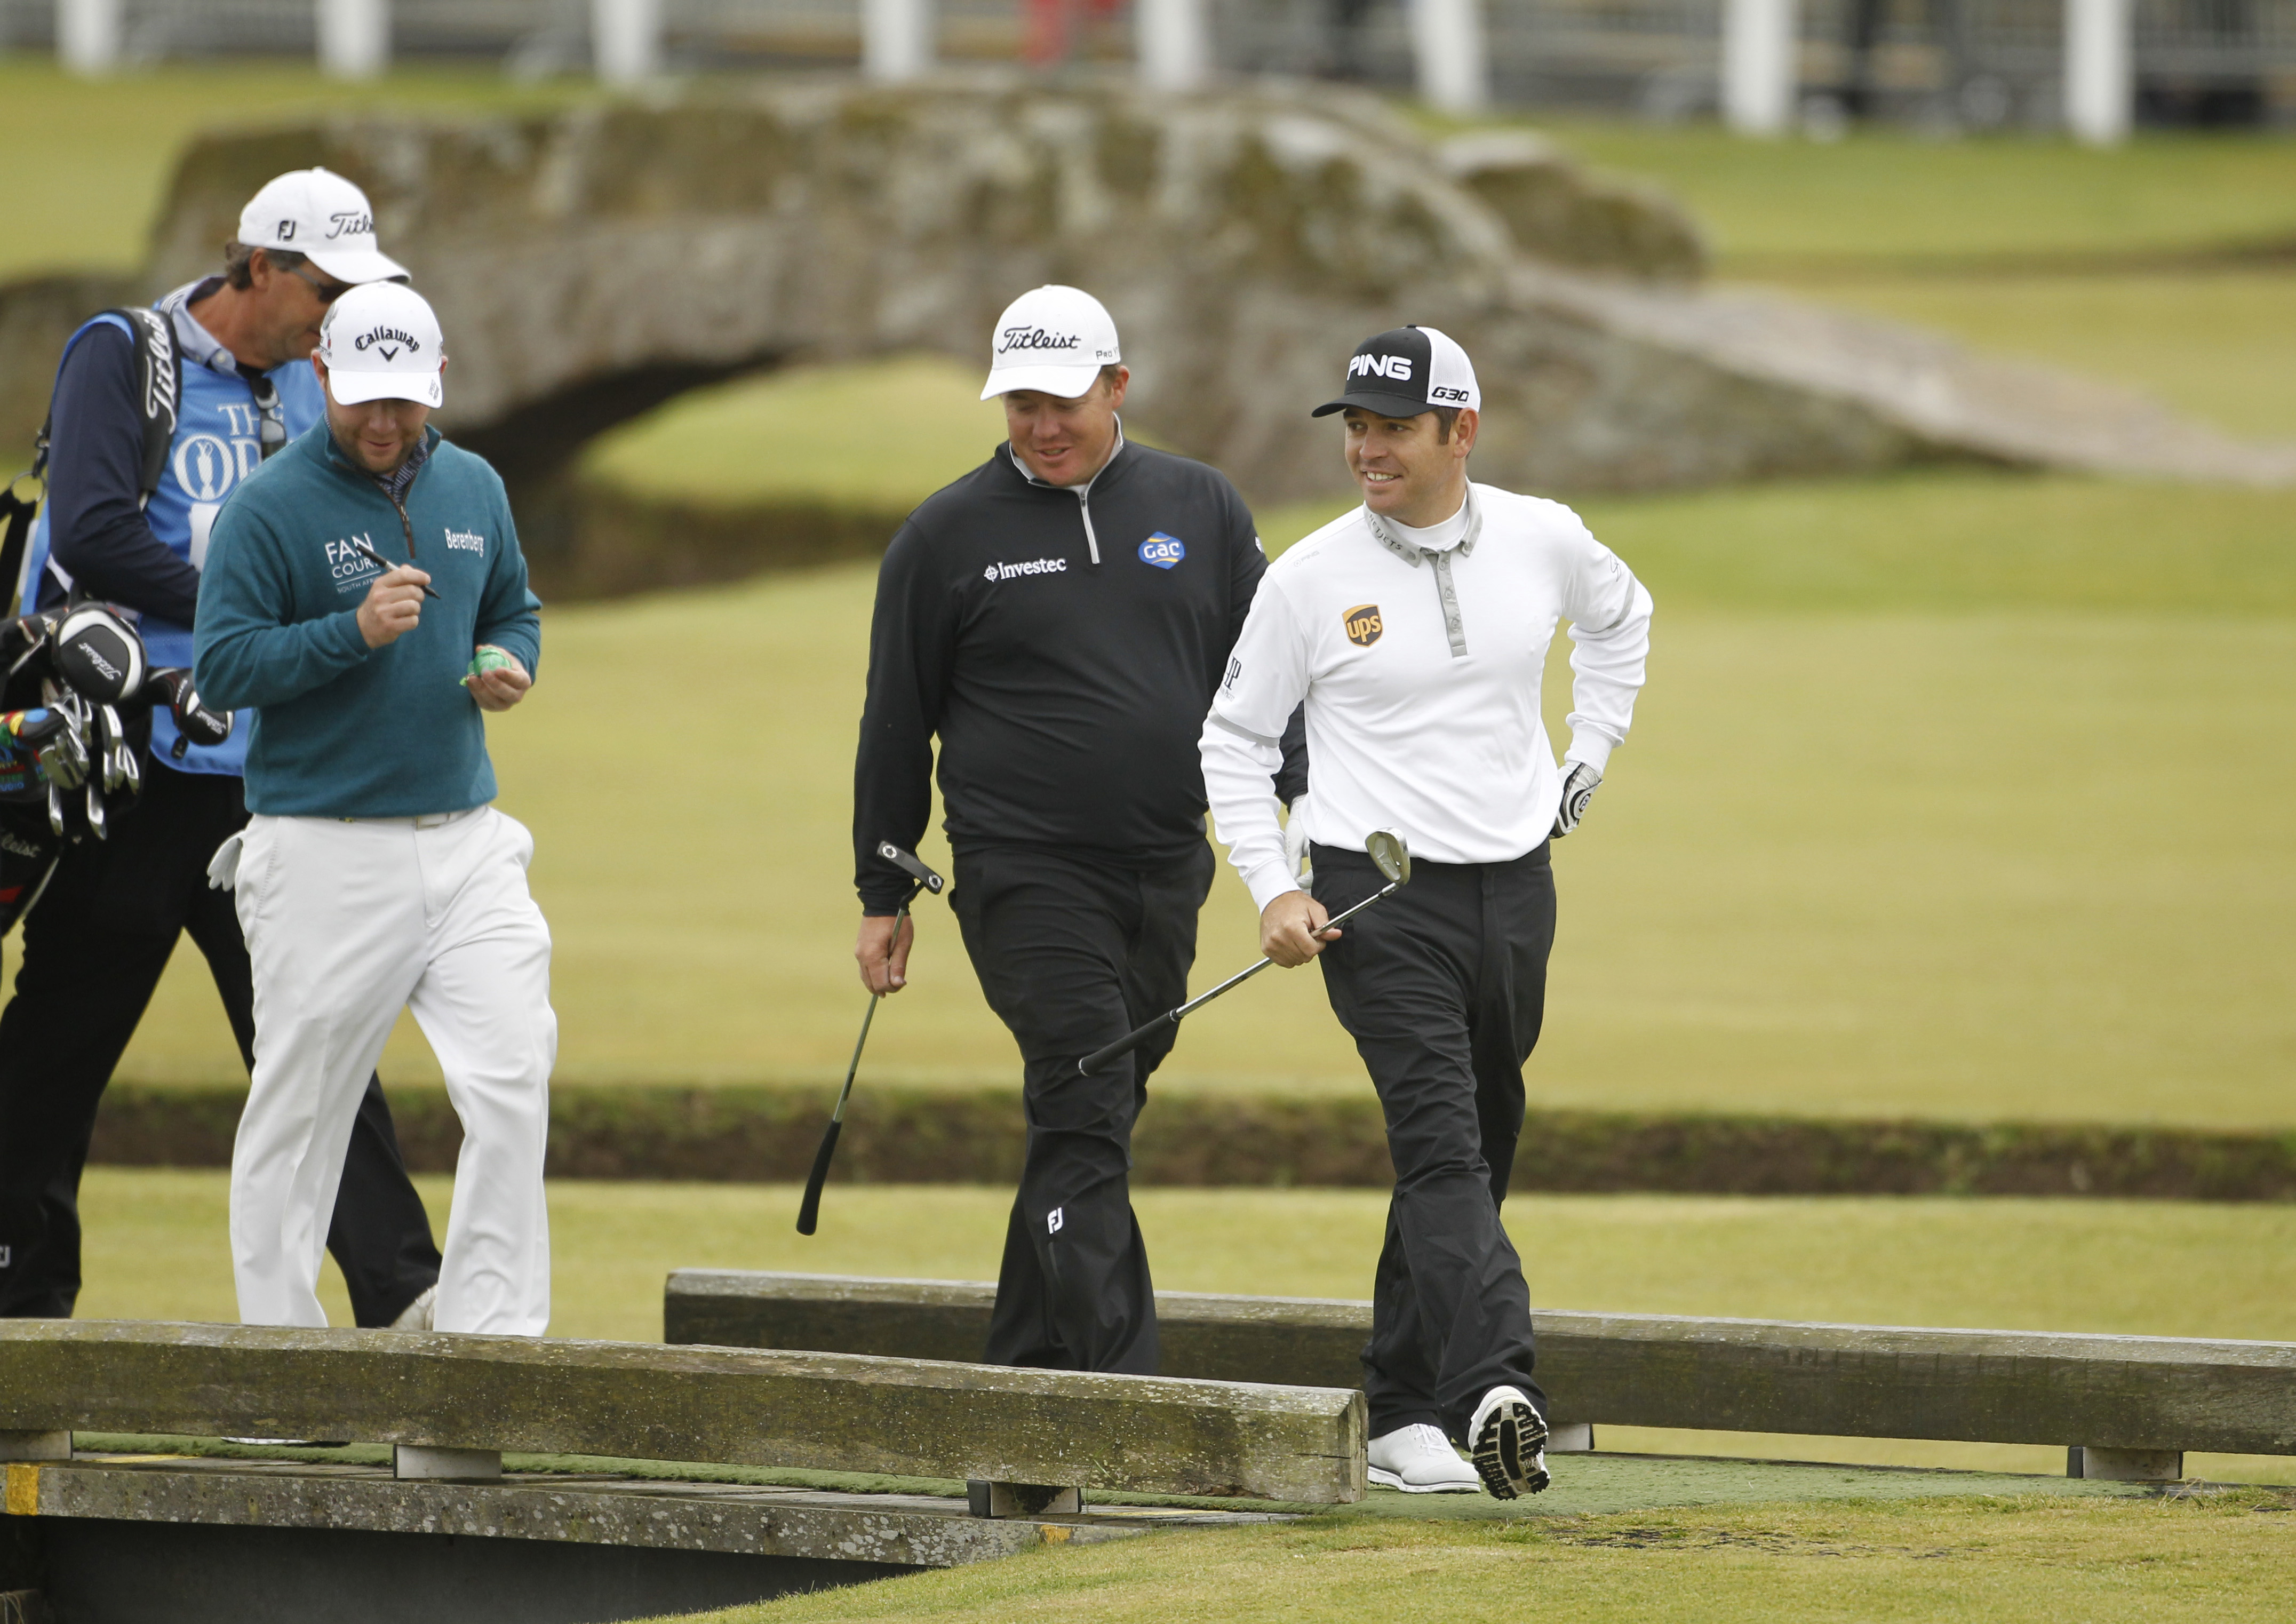 South Africa's George Coetzee, centre, Louis Oosthuizen, right, and Branden Grace walk towards the 1st green during a practice round  at the Old Course, St Andrews, Scotland, Monday, July 13, 2015. The  2015 Open Golf Championship that is due to take plac